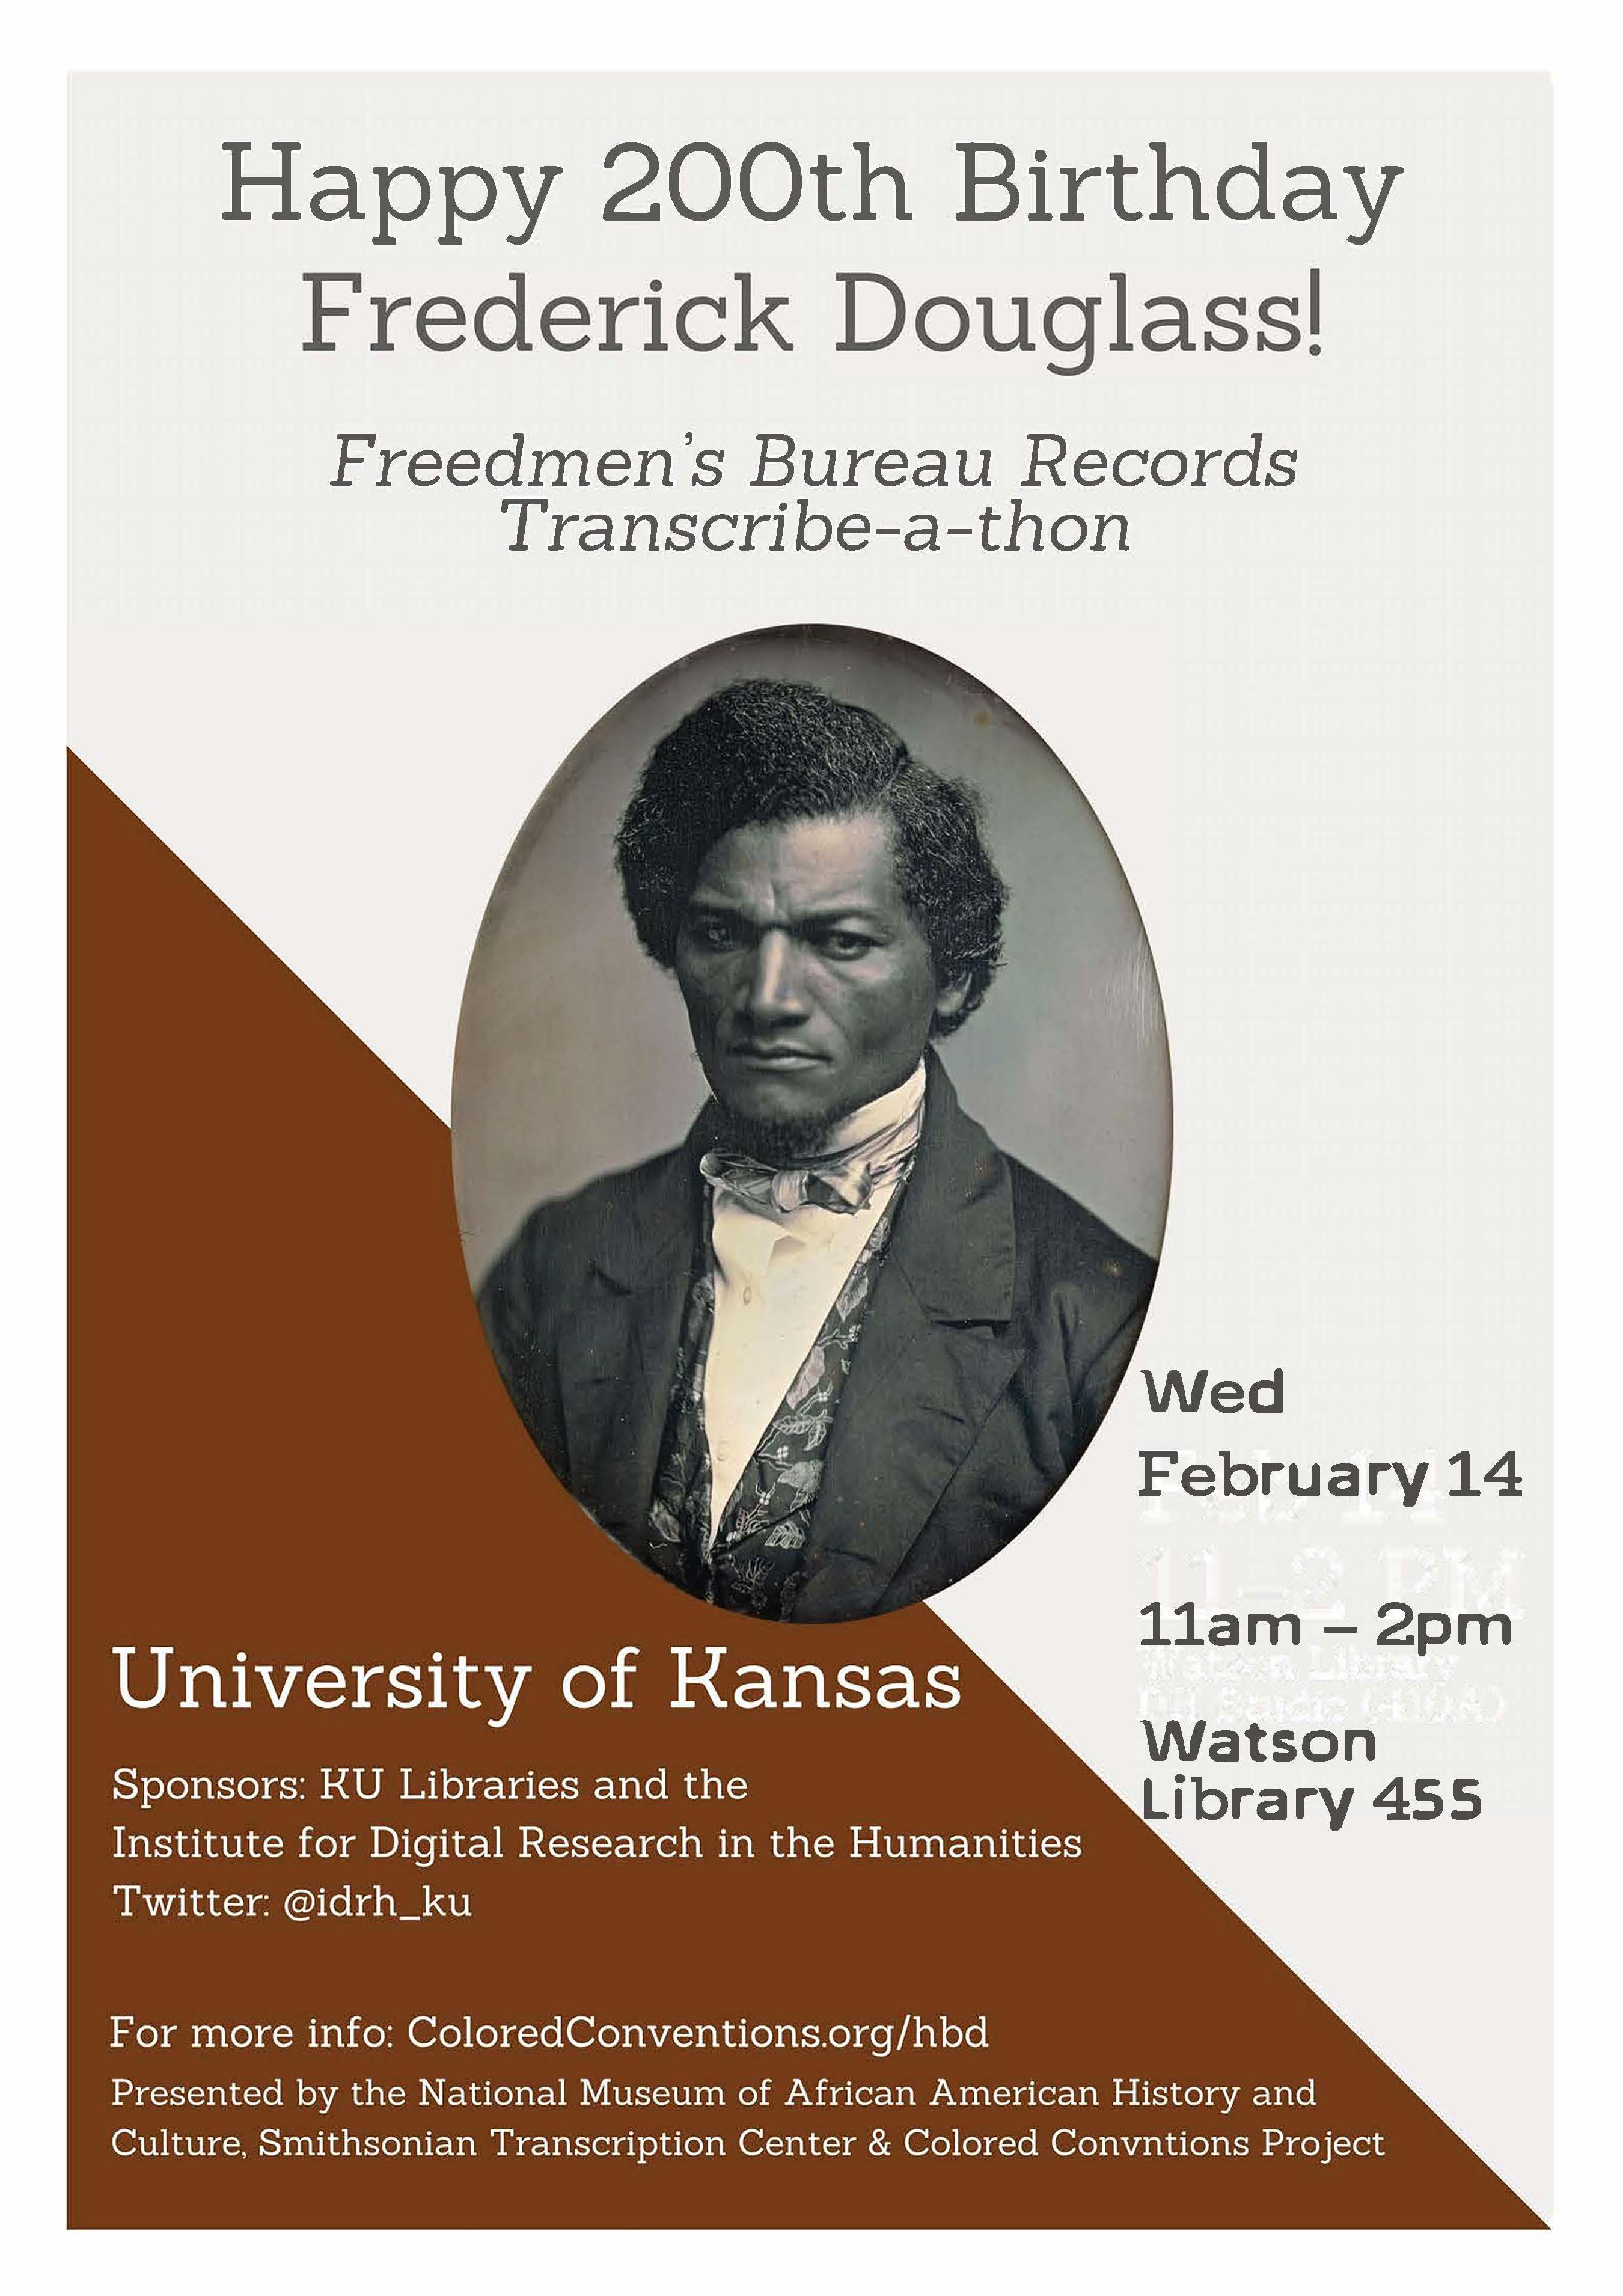 Federick Douglass Birthday Transcribe-a-Thon Flyer